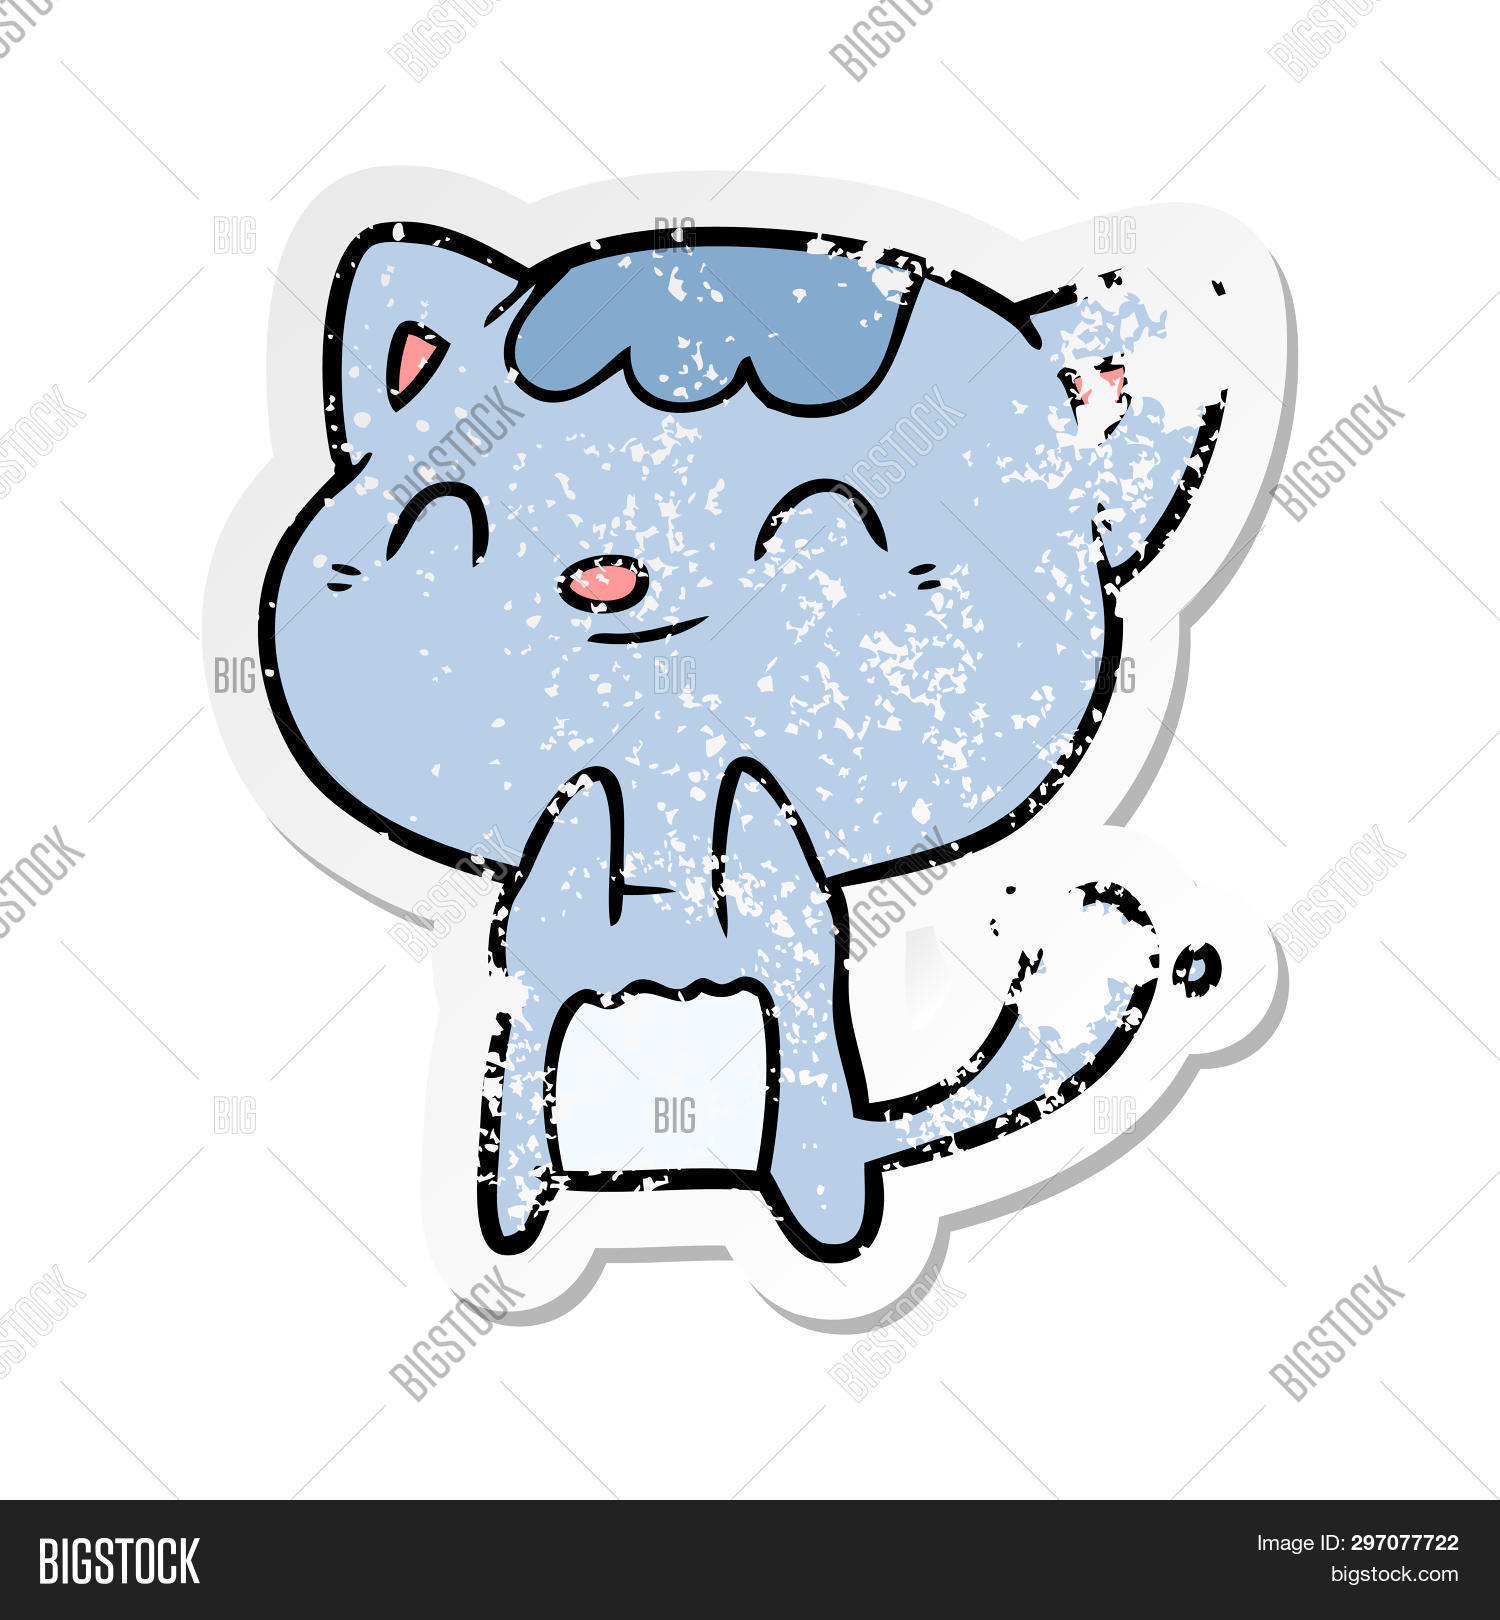 distressed sticker of a cartoon happy cat